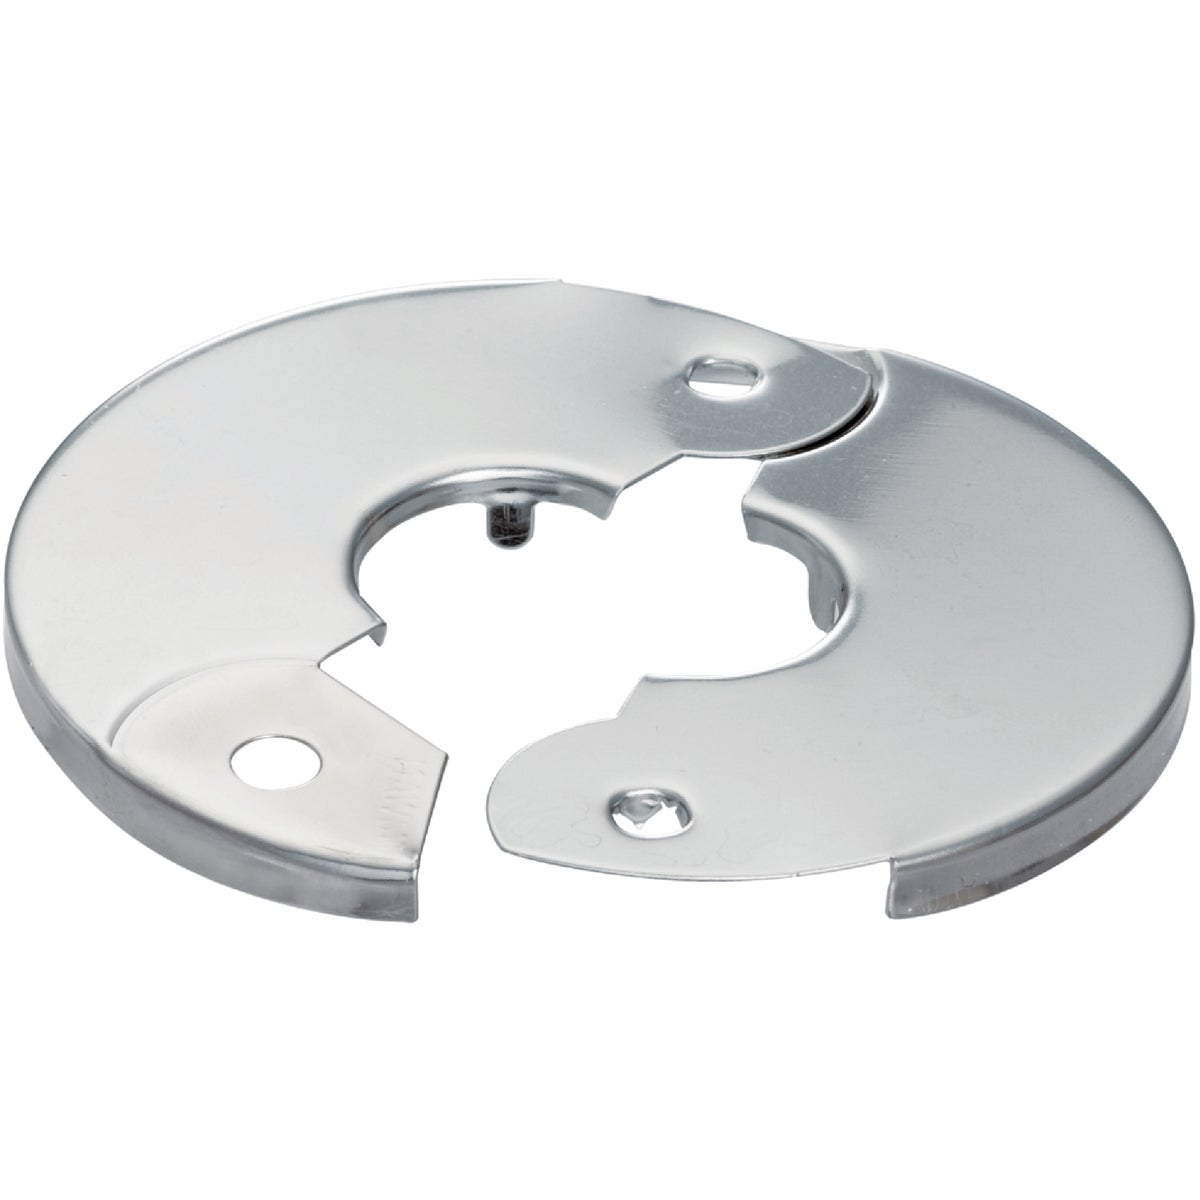 "2""IPS SPLIT FLOOR FLANGE - PP857-5 by Plumb Pak/keeney Mfg"